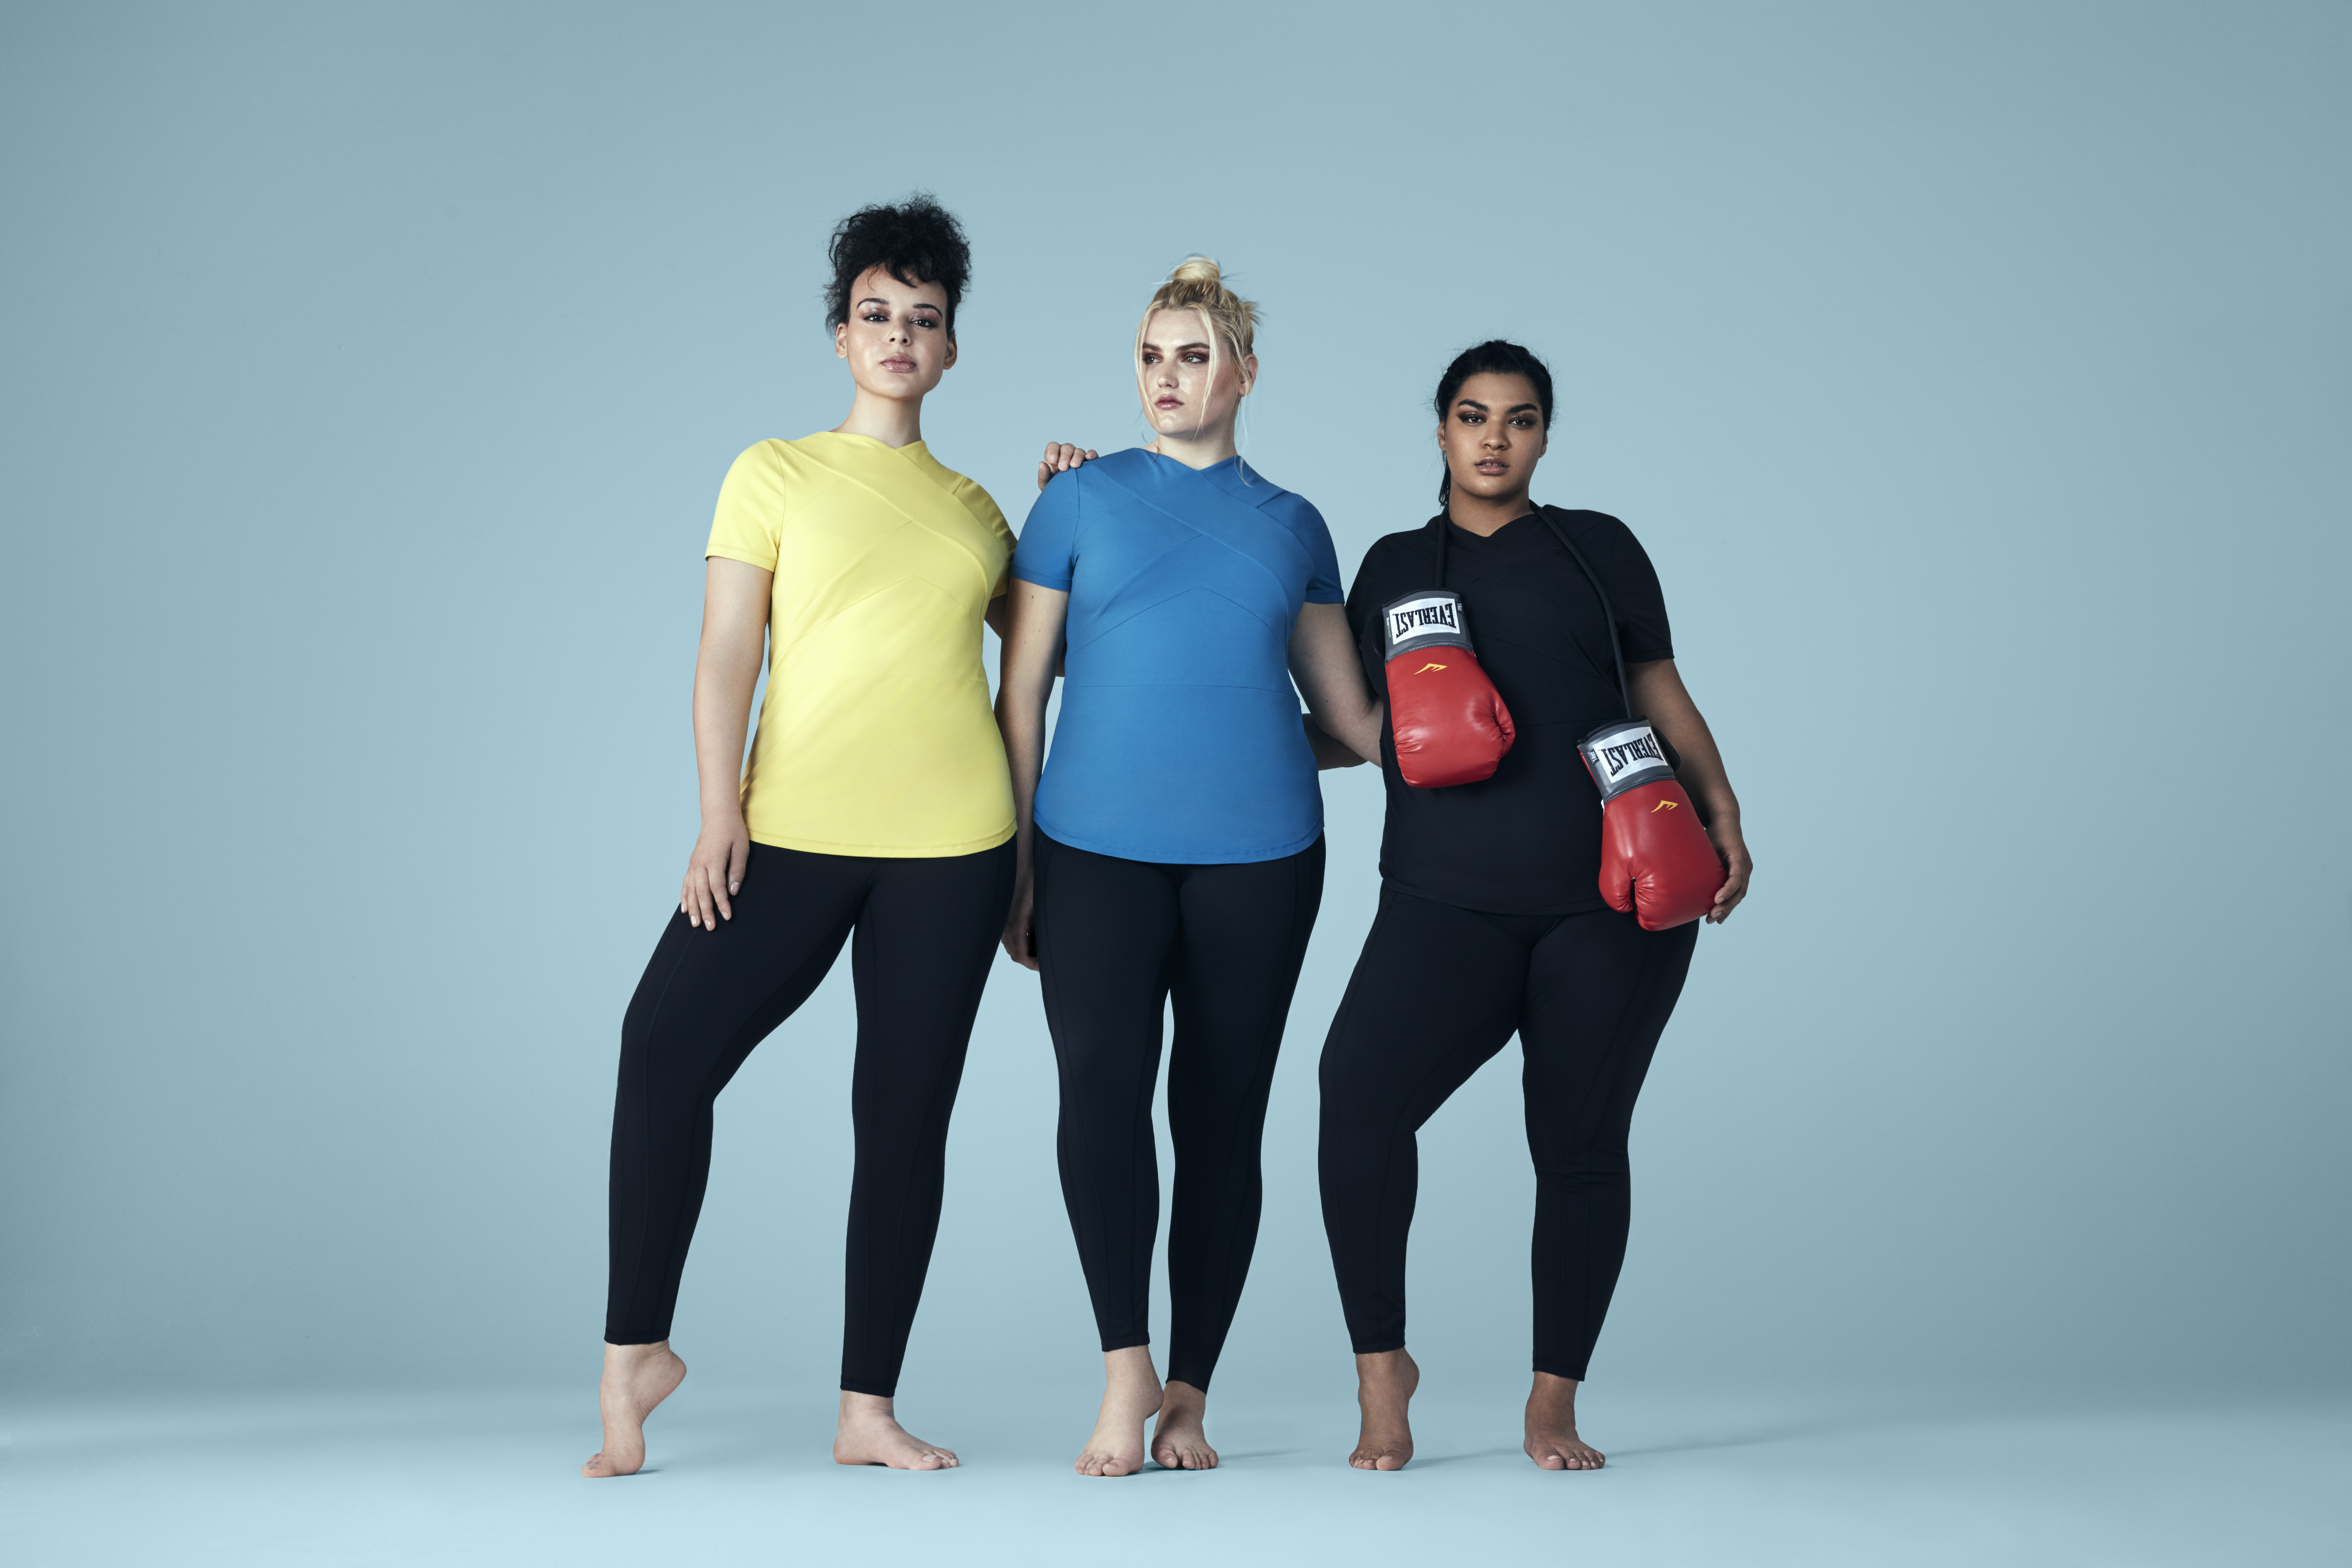 1d97f5a54c Plus-Size Sportswear Is Still Not Widely Available - Racked